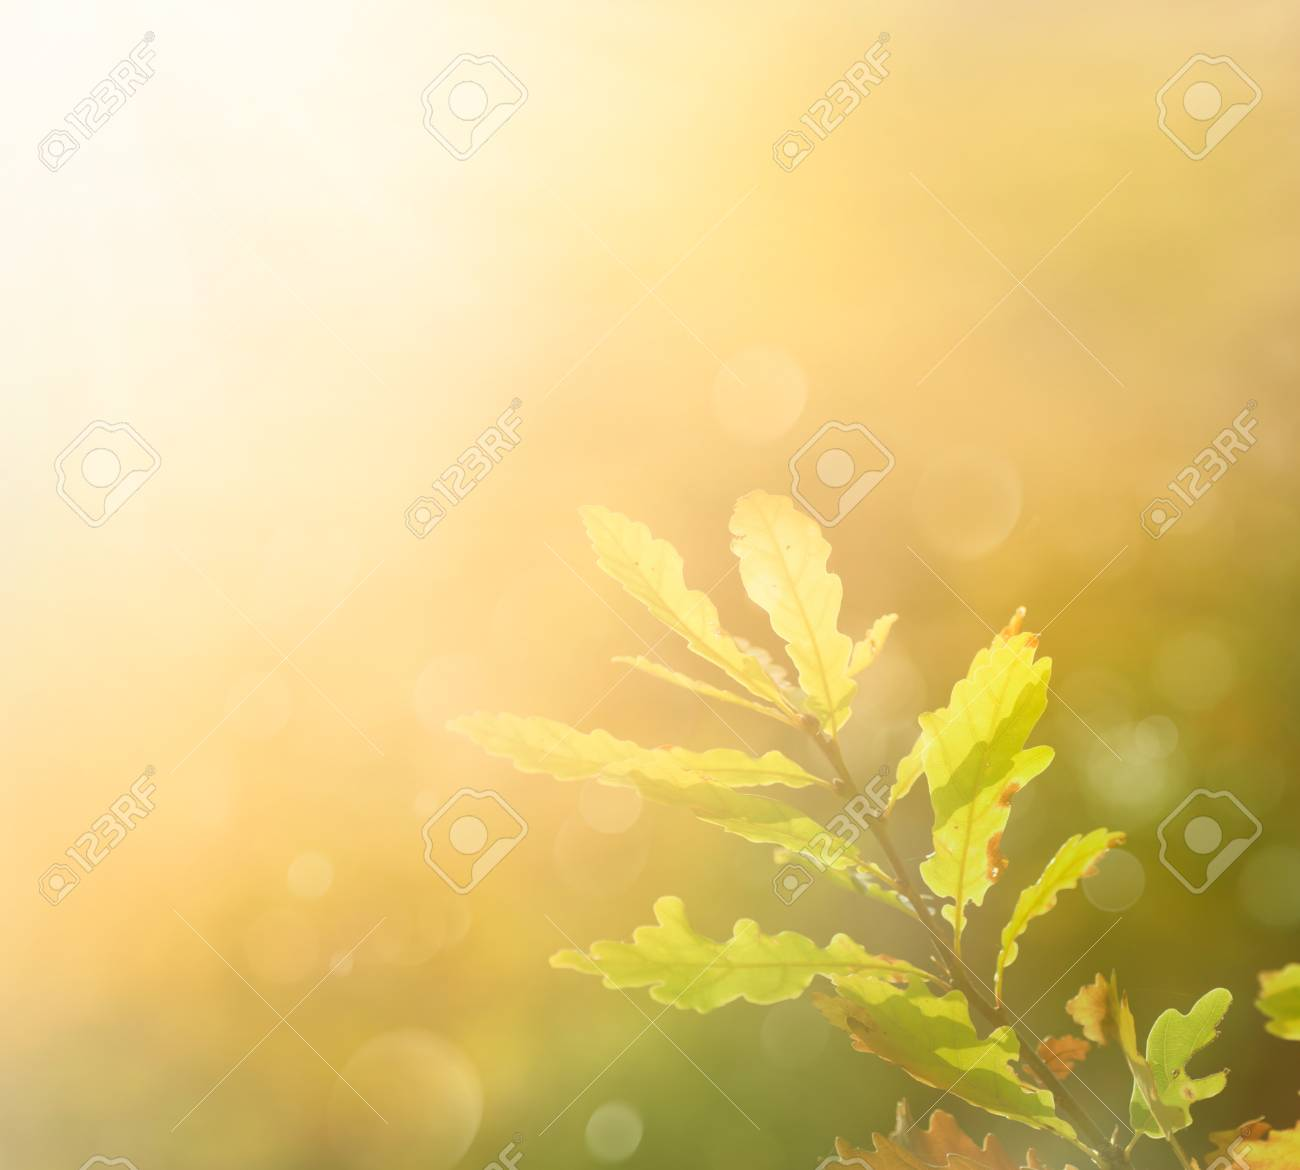 Autumn leaf in the morning. Background with autumn colors and copyspace Stock Photo - 11595864